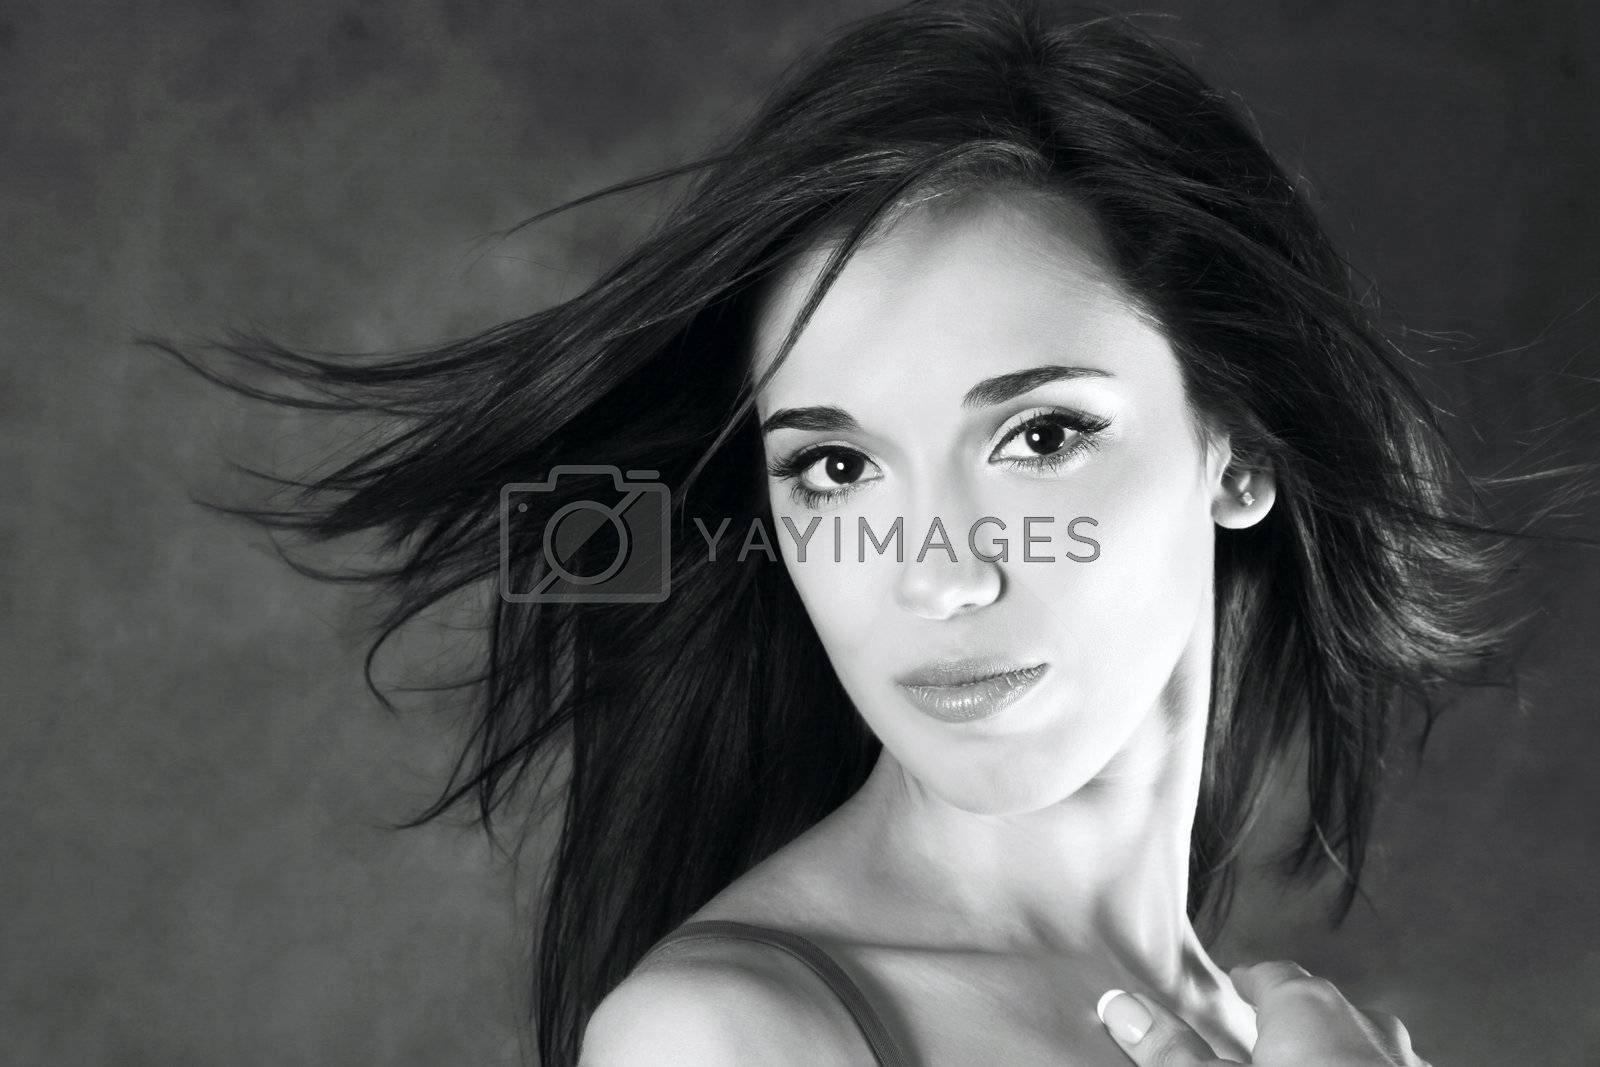 Royalty free image of Beautiful girl by friday